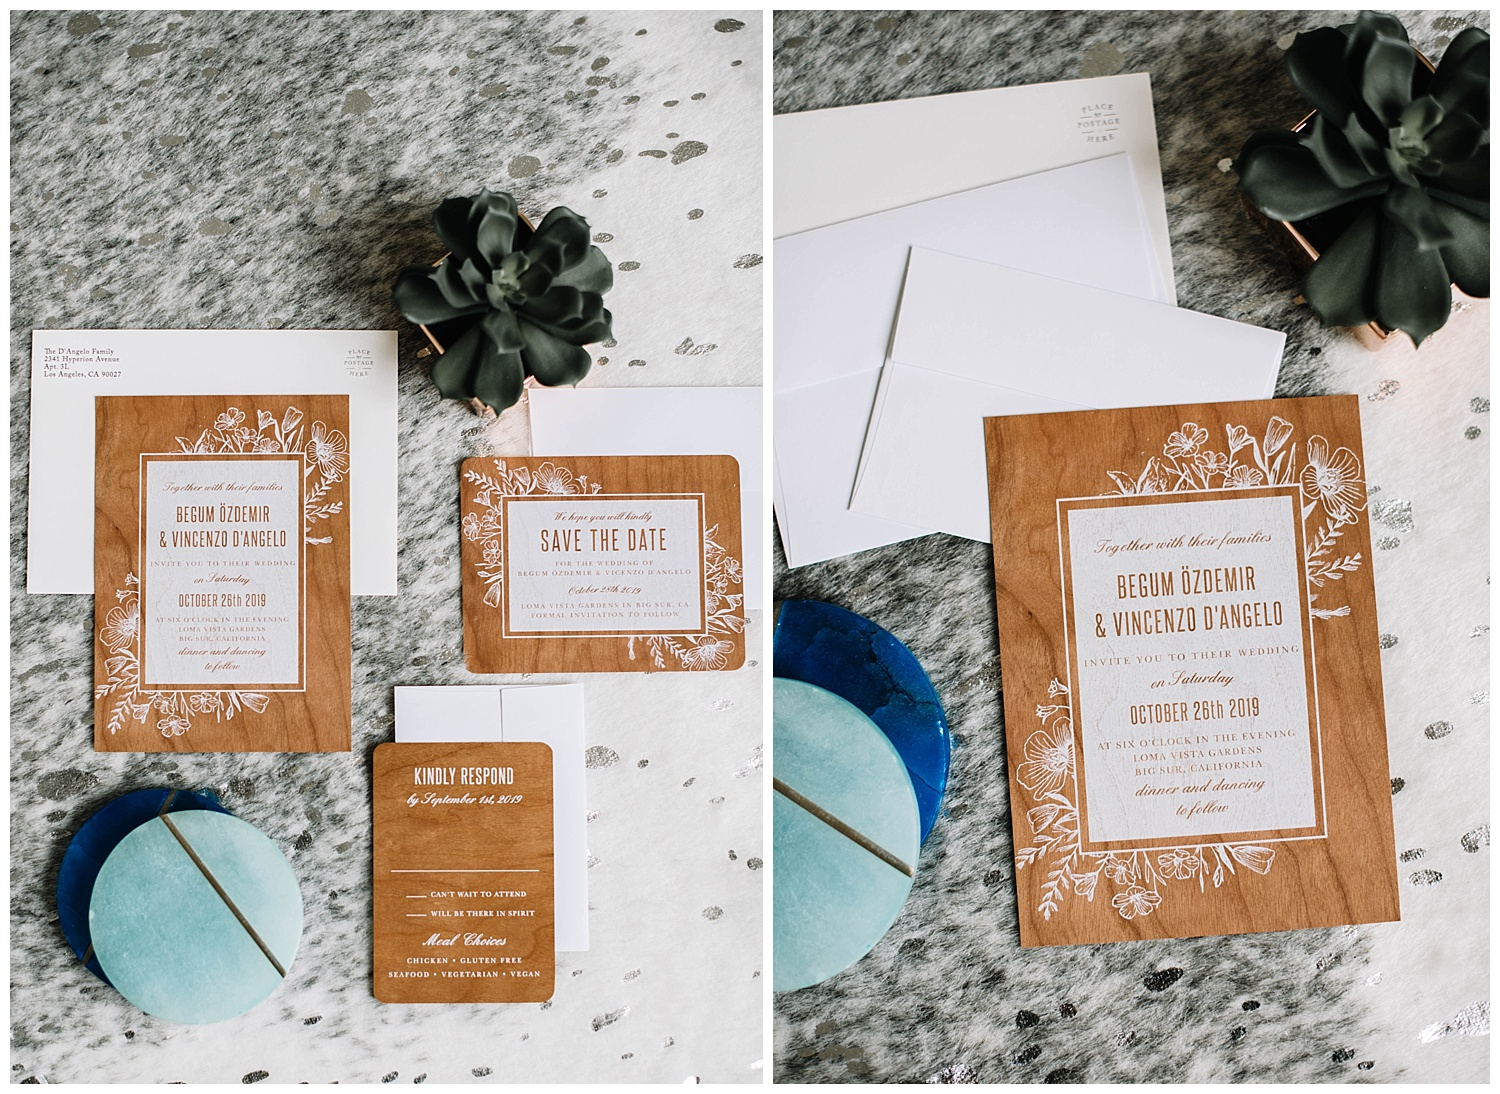 Basic-Invite-Anthropologie-Coasters-Wedding-Invites.jpg